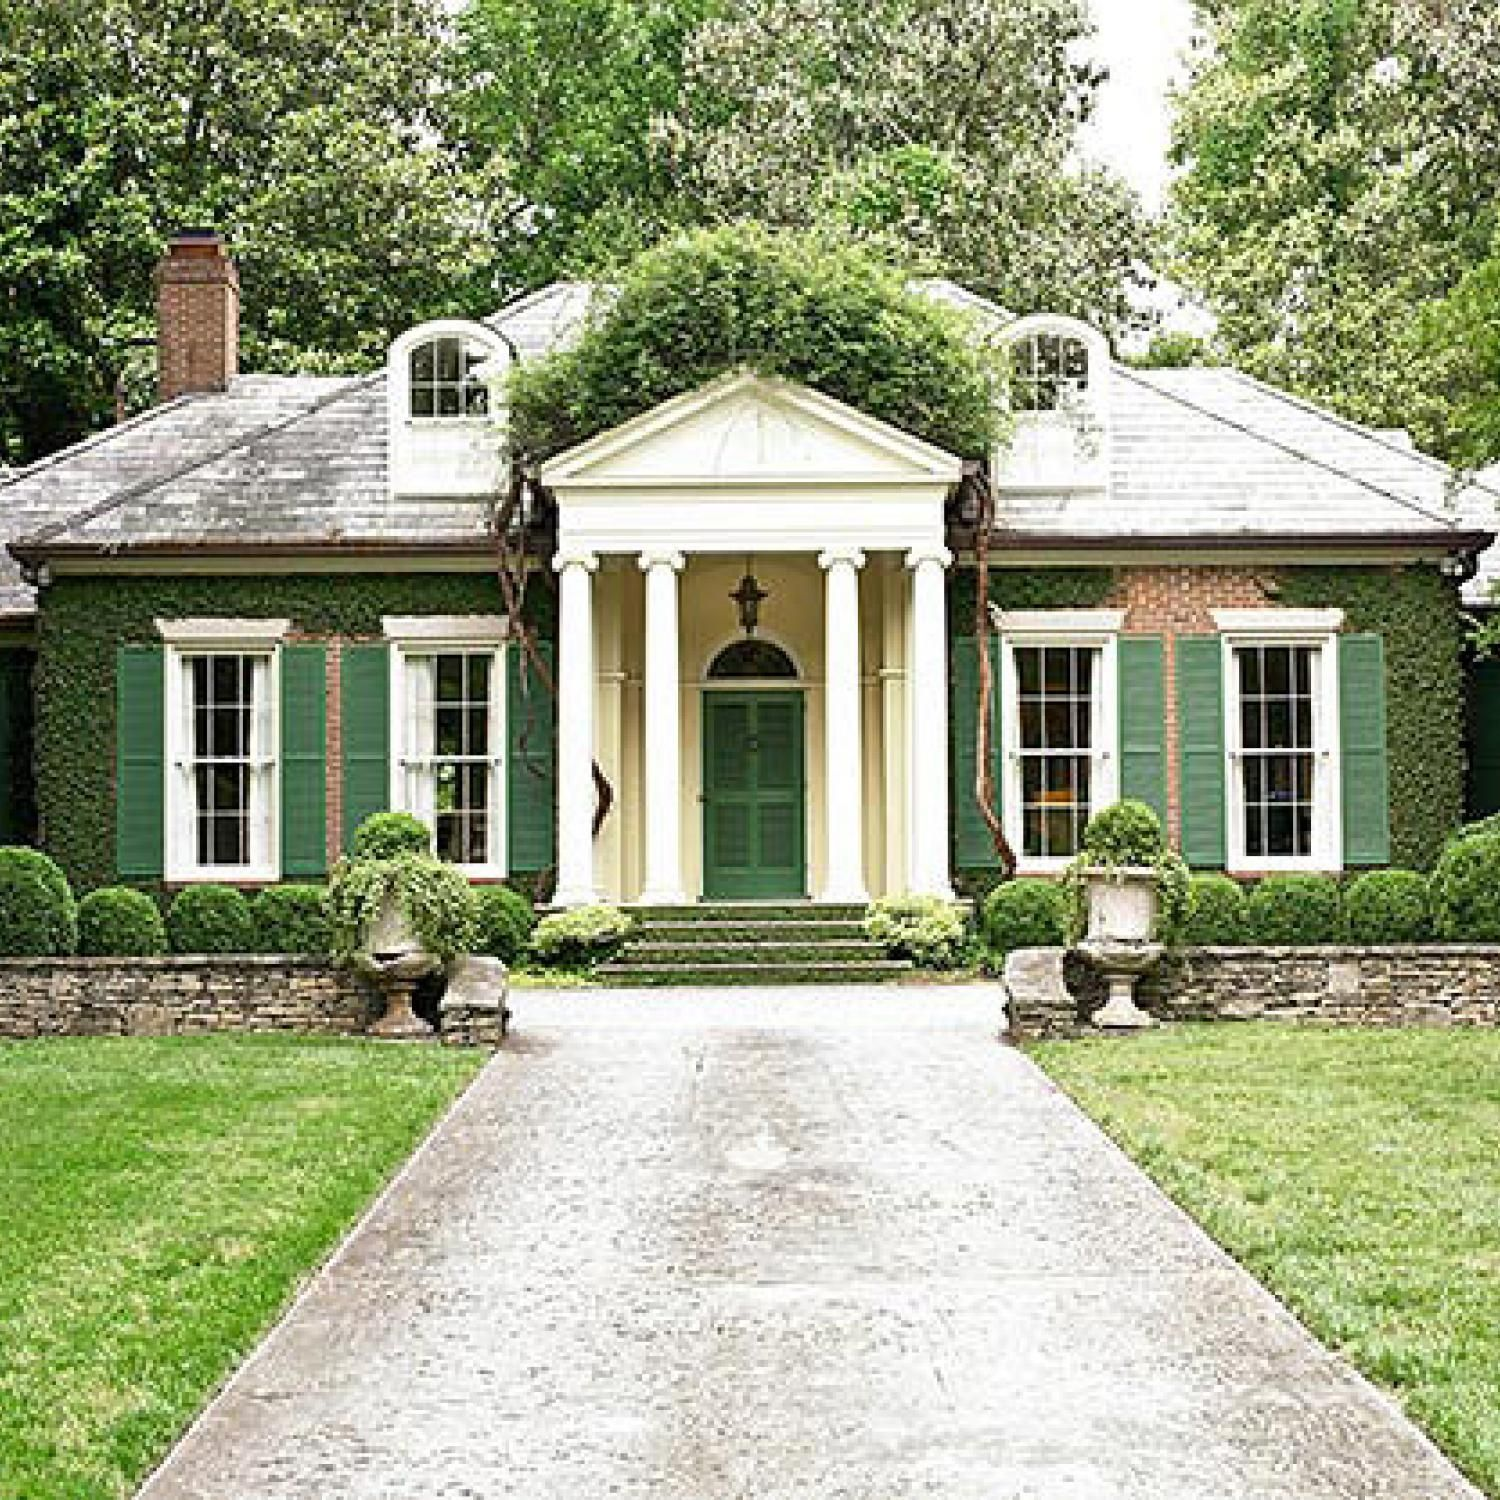 This is exactly me. I don't need a gigantic house but I'd really love to live in something elegant and gorgeous - just like this.